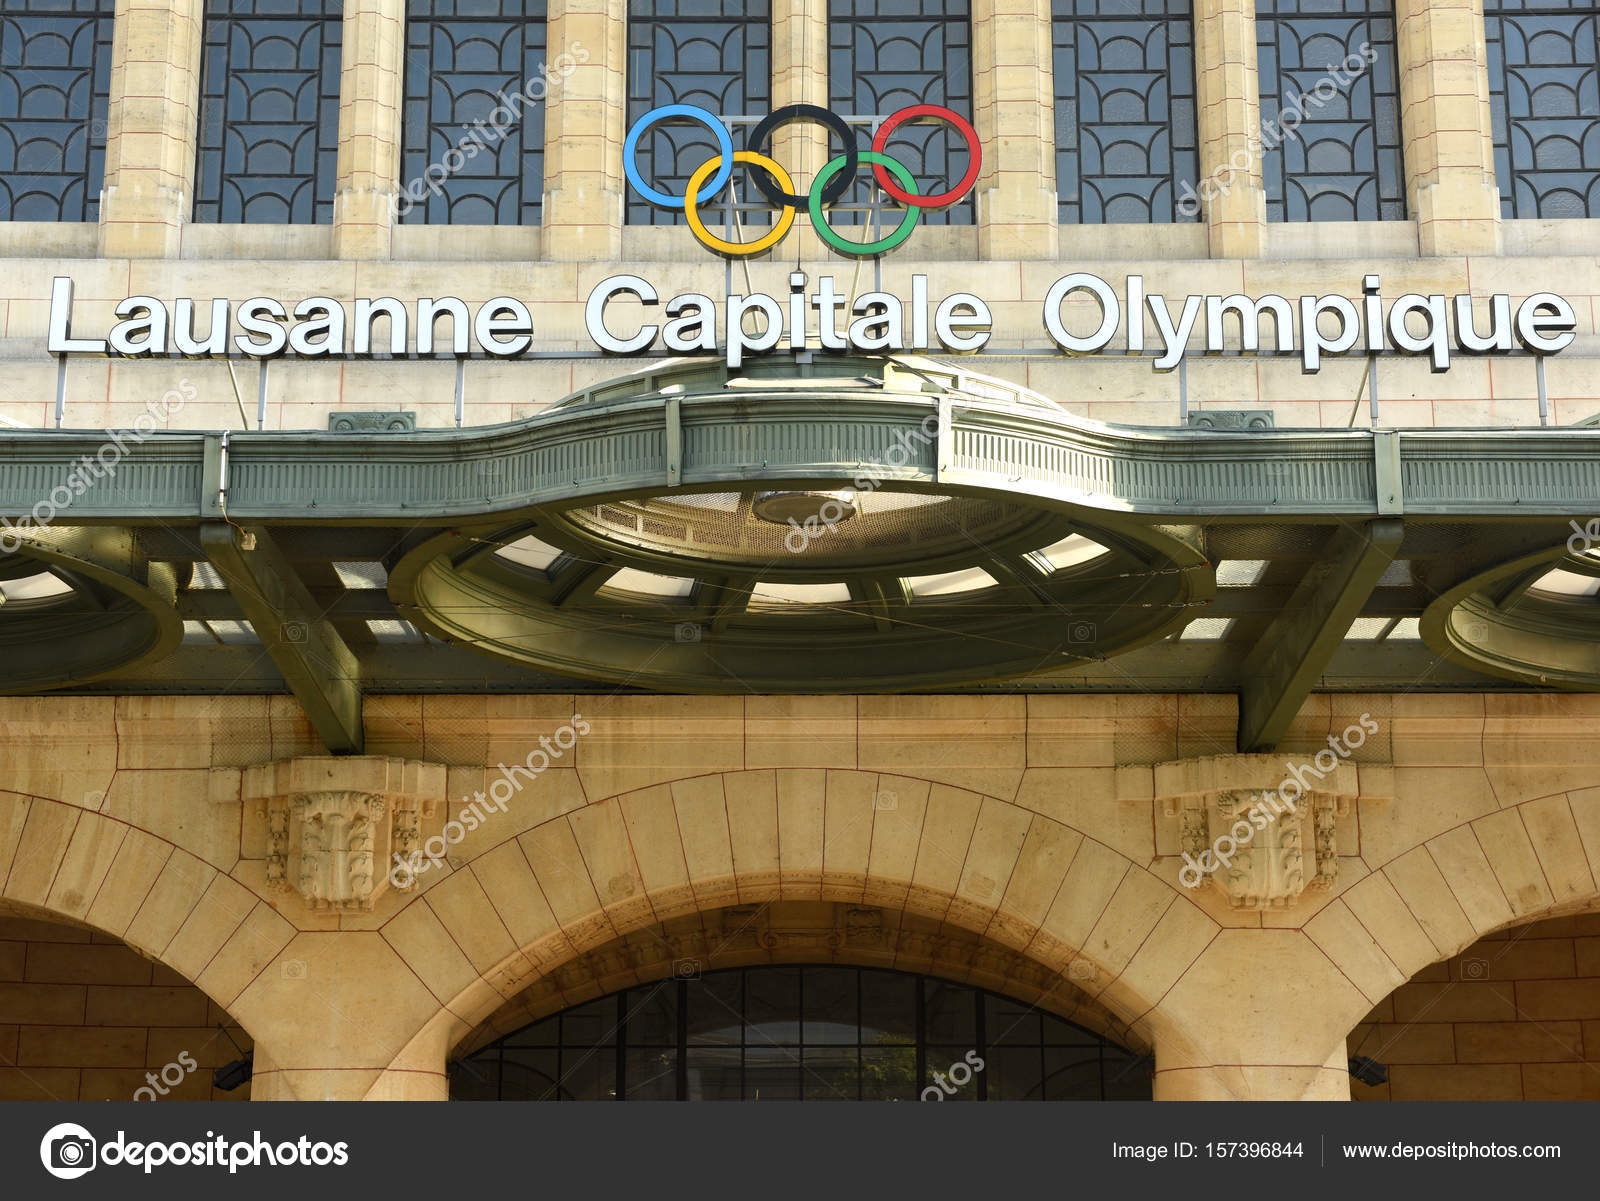 Olympic rings and words 'Lausanne Capitale Olympique' at the main